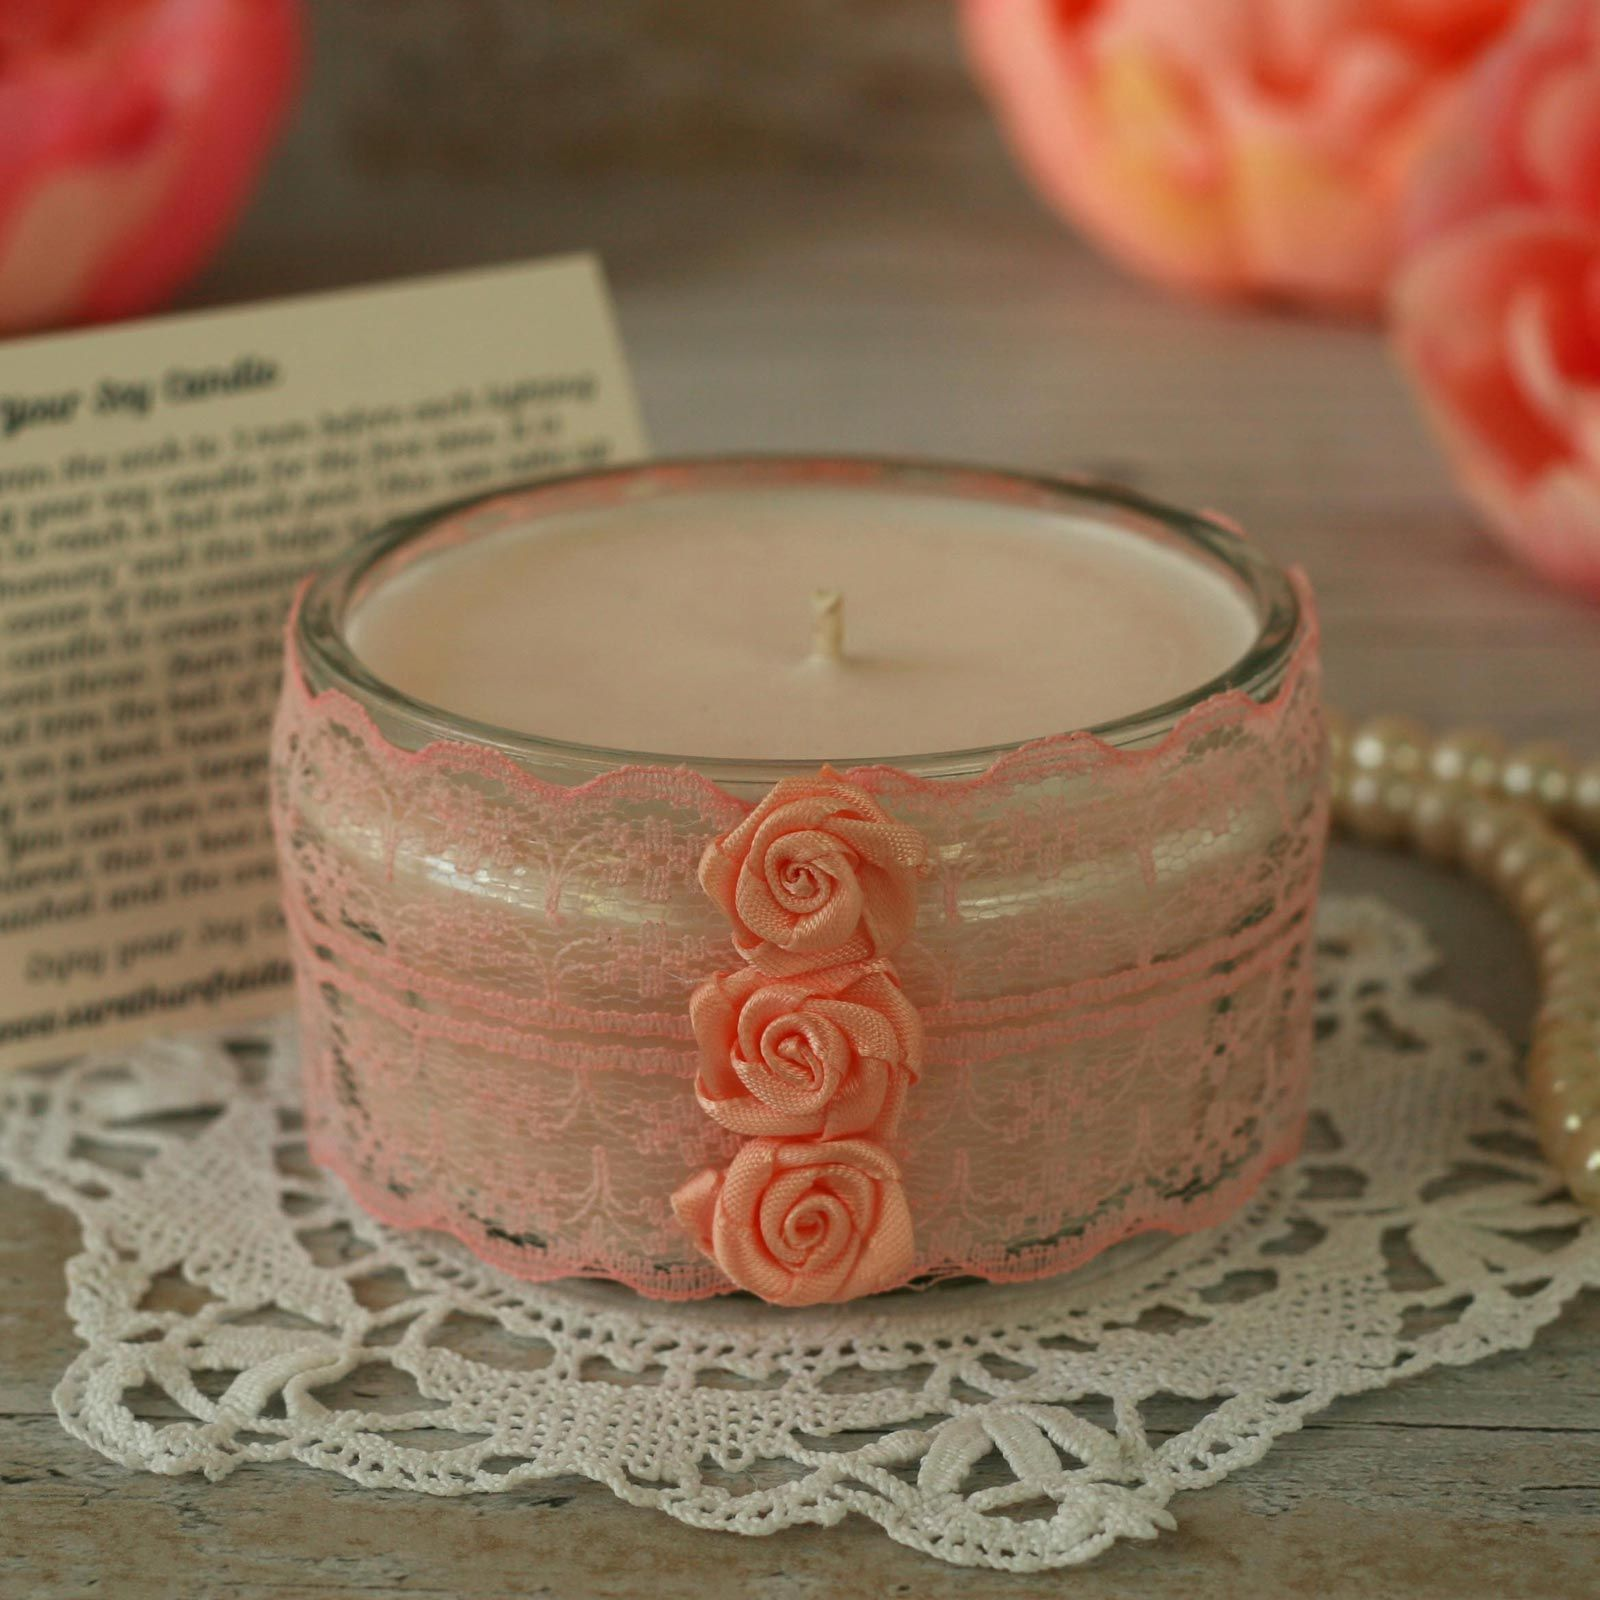 Handmade shabby chic pink lace candle.jpg